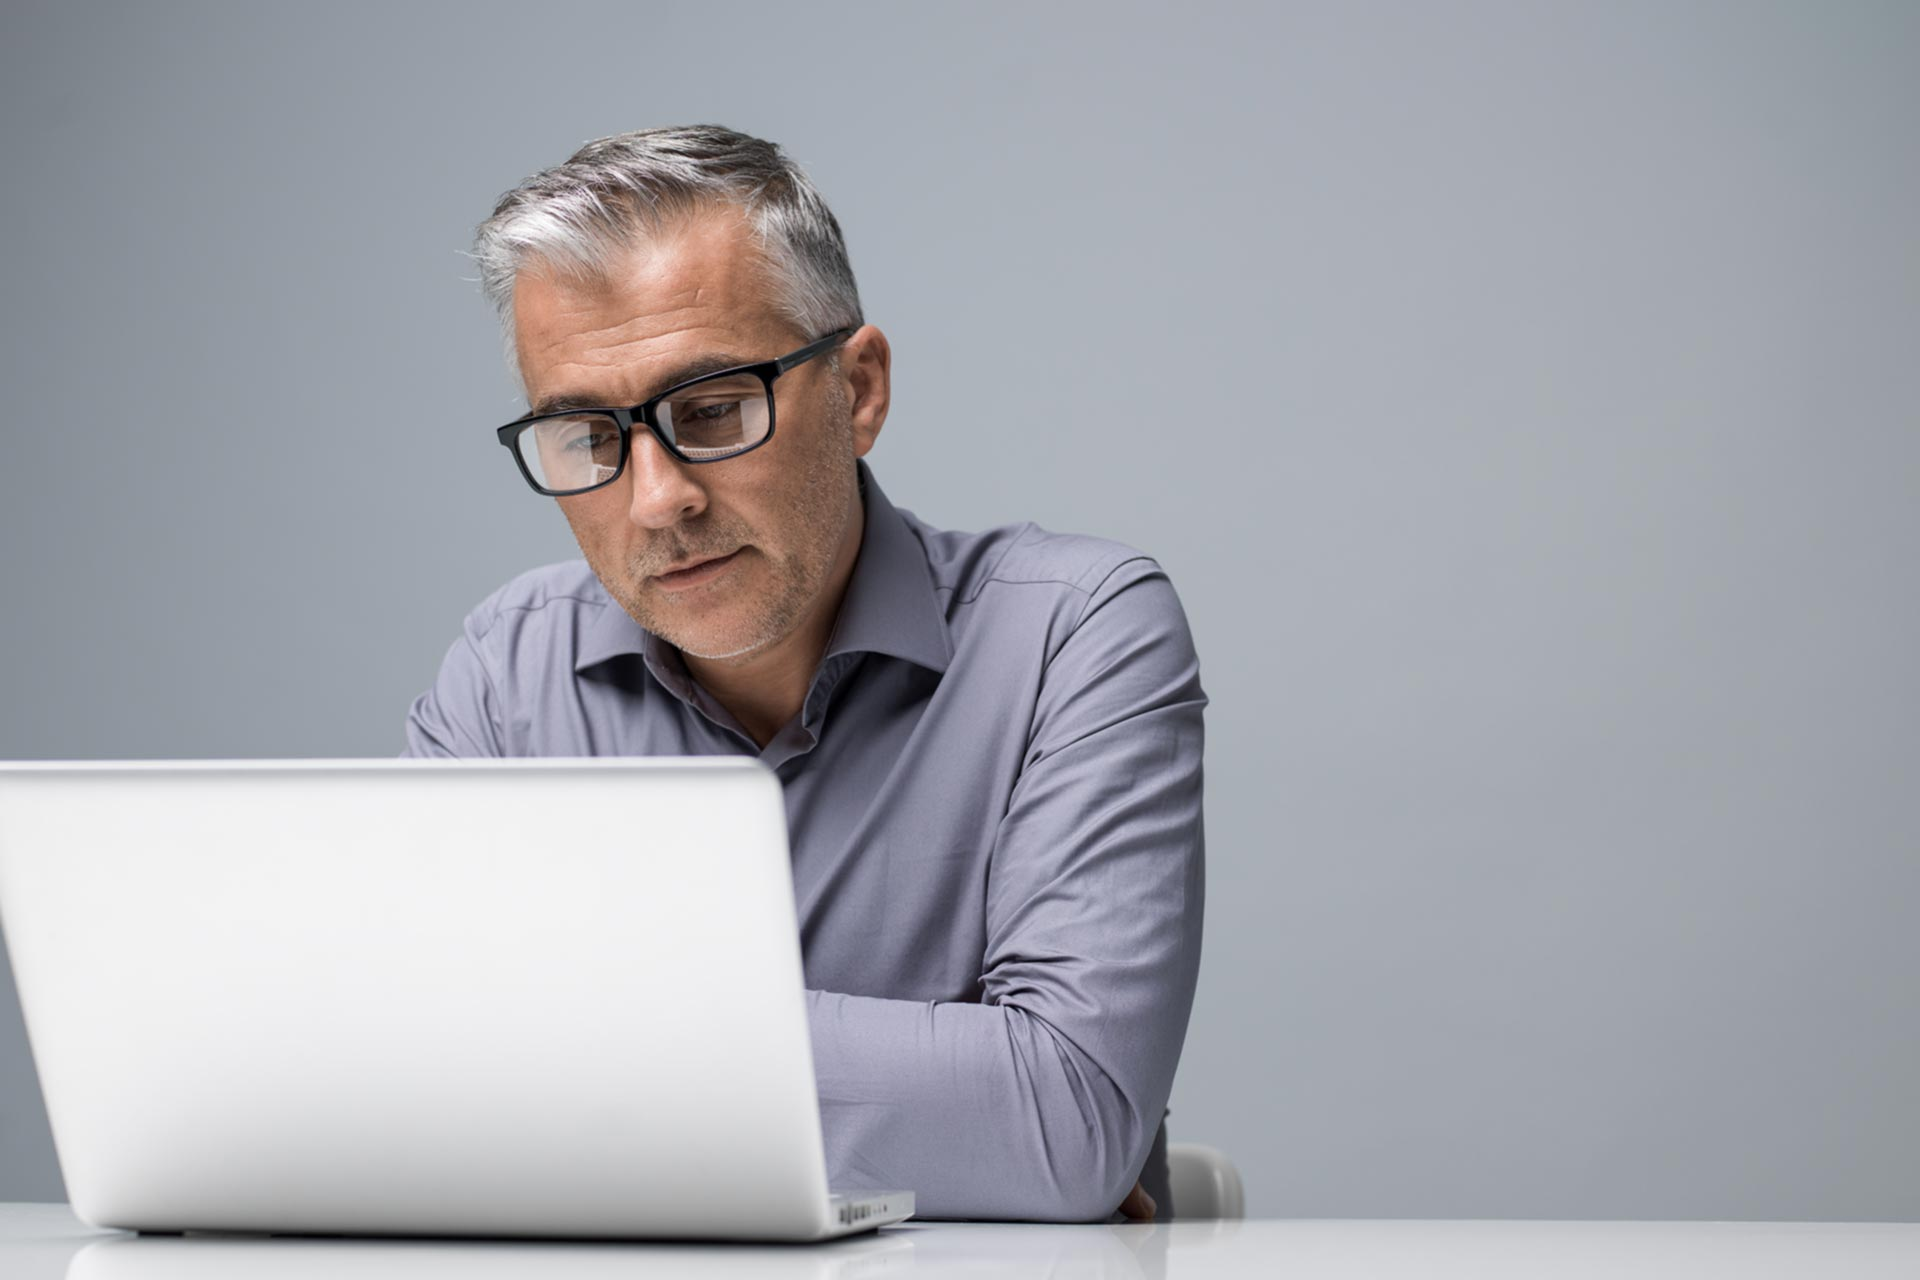 Man doing professional corporation work on his laptop